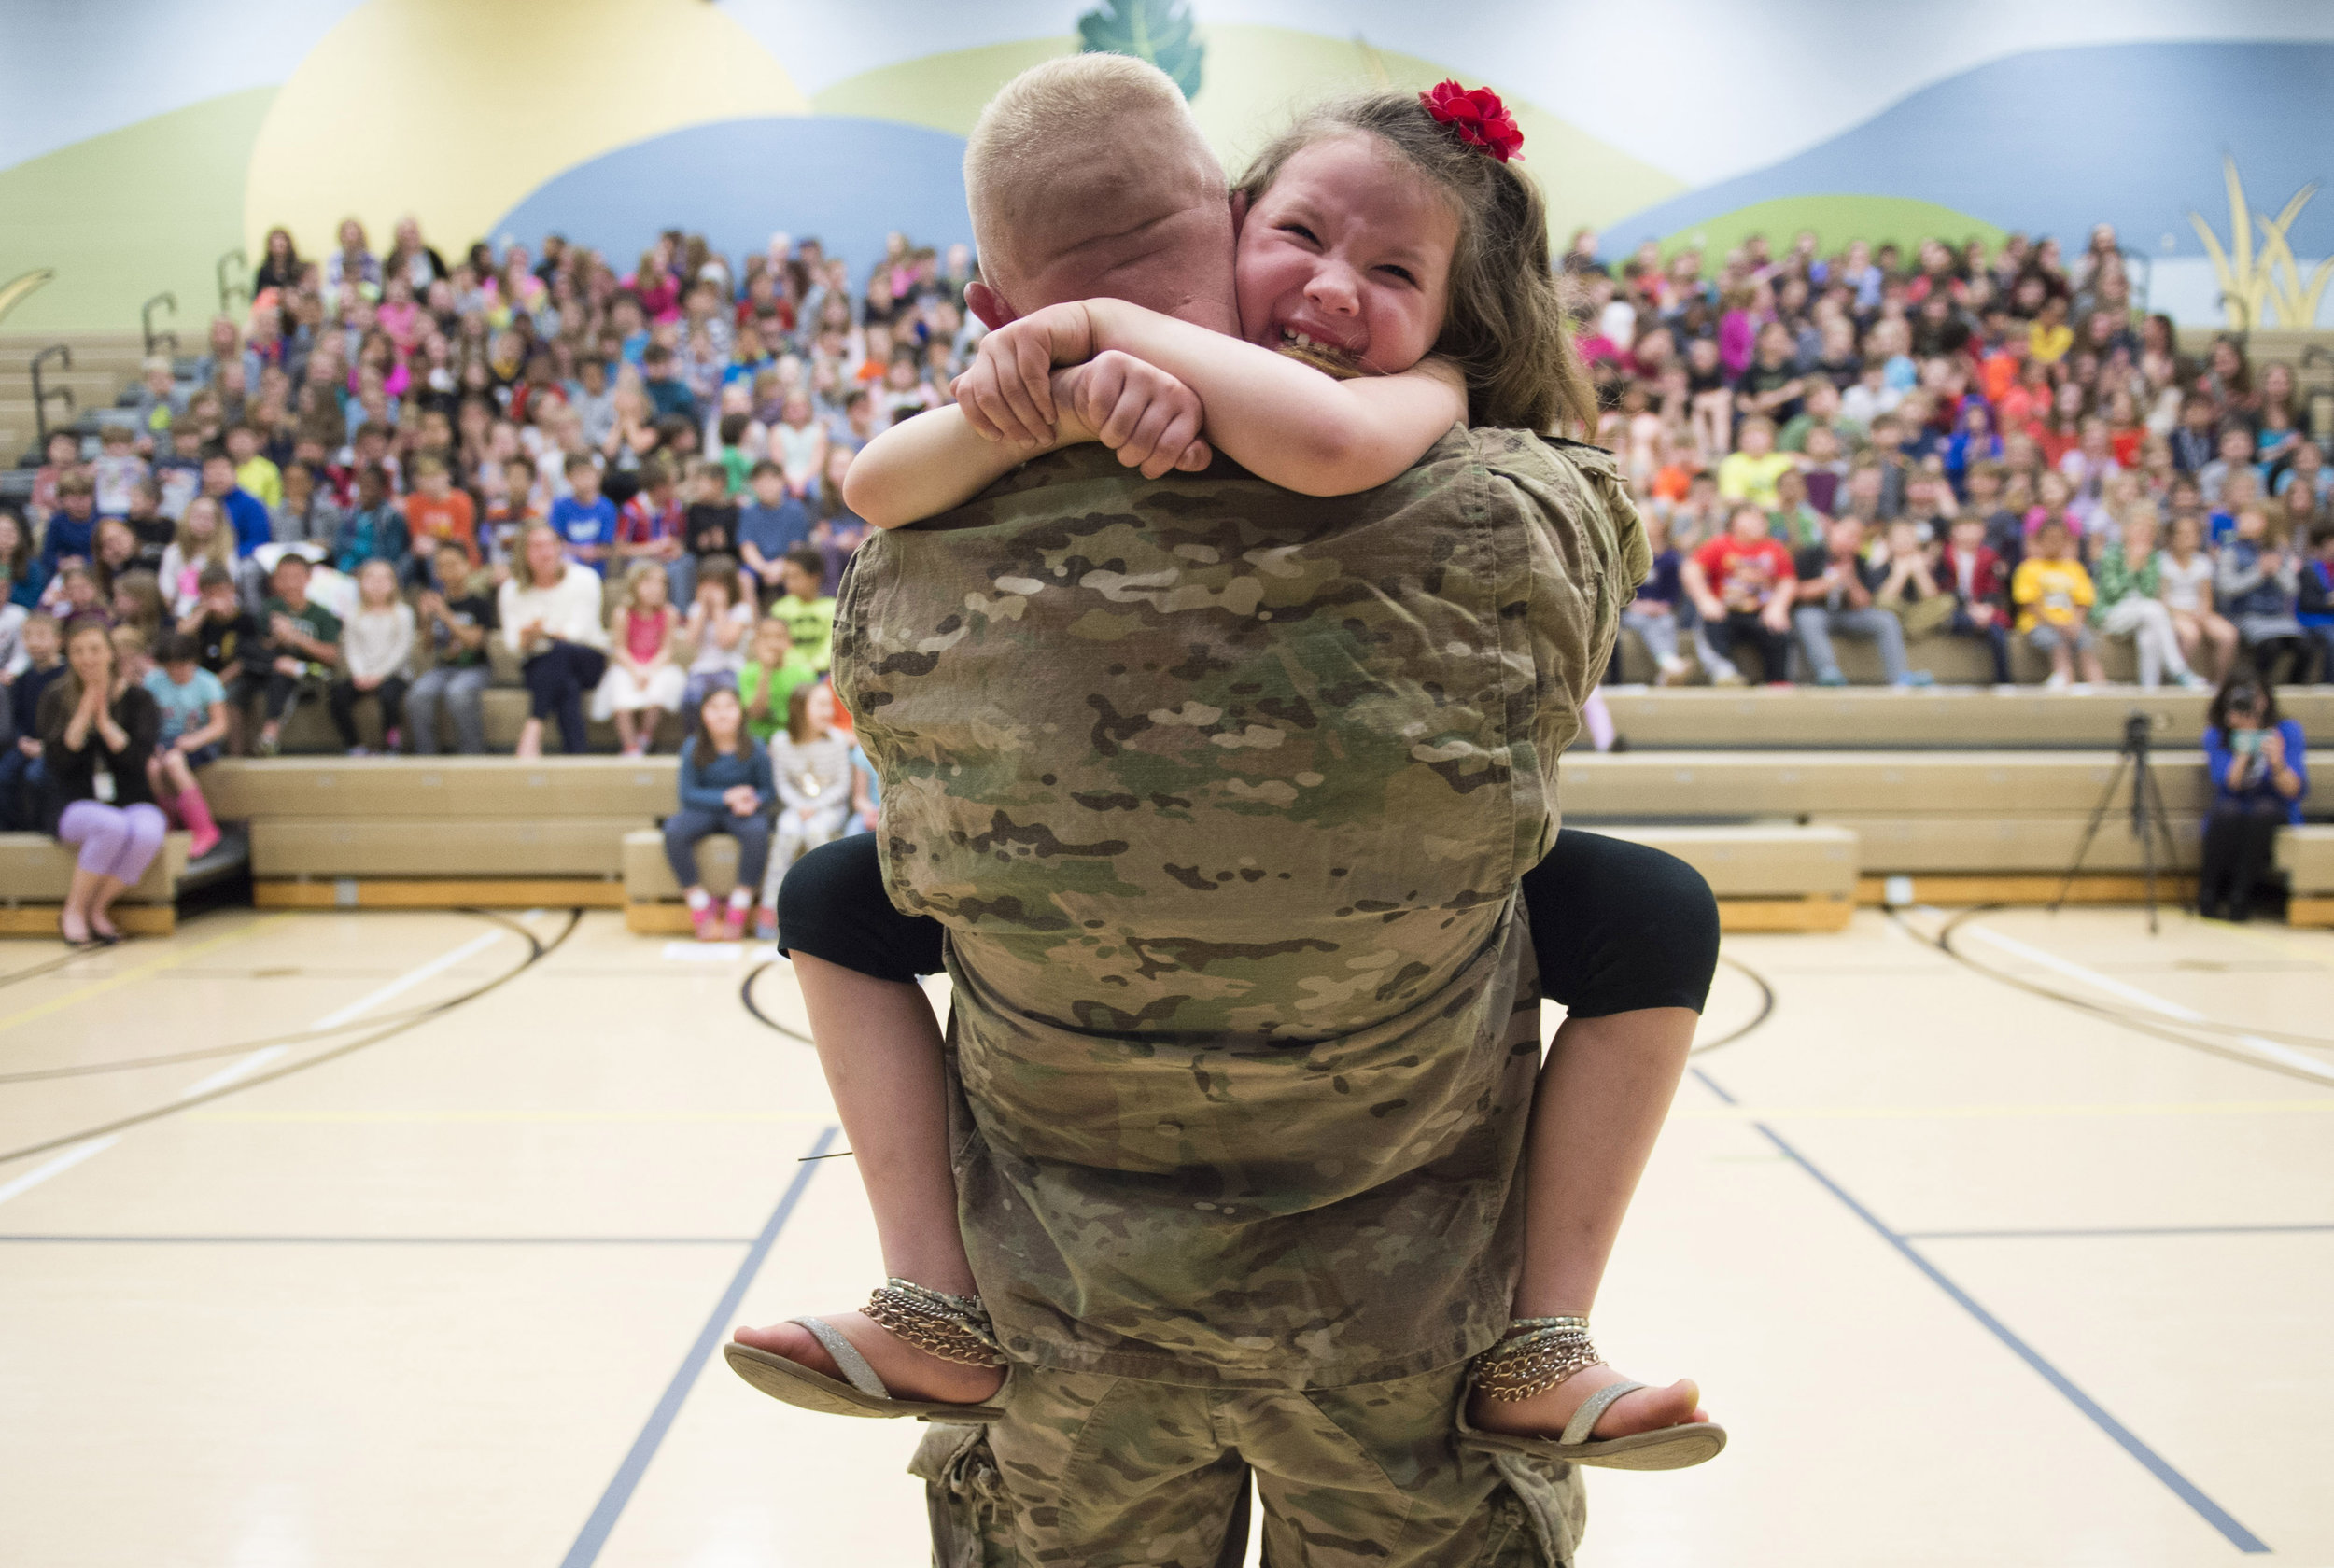 Second grader Imogen Nowak cries in the arms of her father United States Army Captain Erik Nowak after he surprised her during an assembly for National Kindness Week at Quaker Valley's Osborne Elementary School in Sewickley on Tuesday, March 28, 2017. Captain Nowak has been in Qatar, Iraq, Kuwait, and Turkey since September 2016. (Steph Chambers/Post-Gazette)